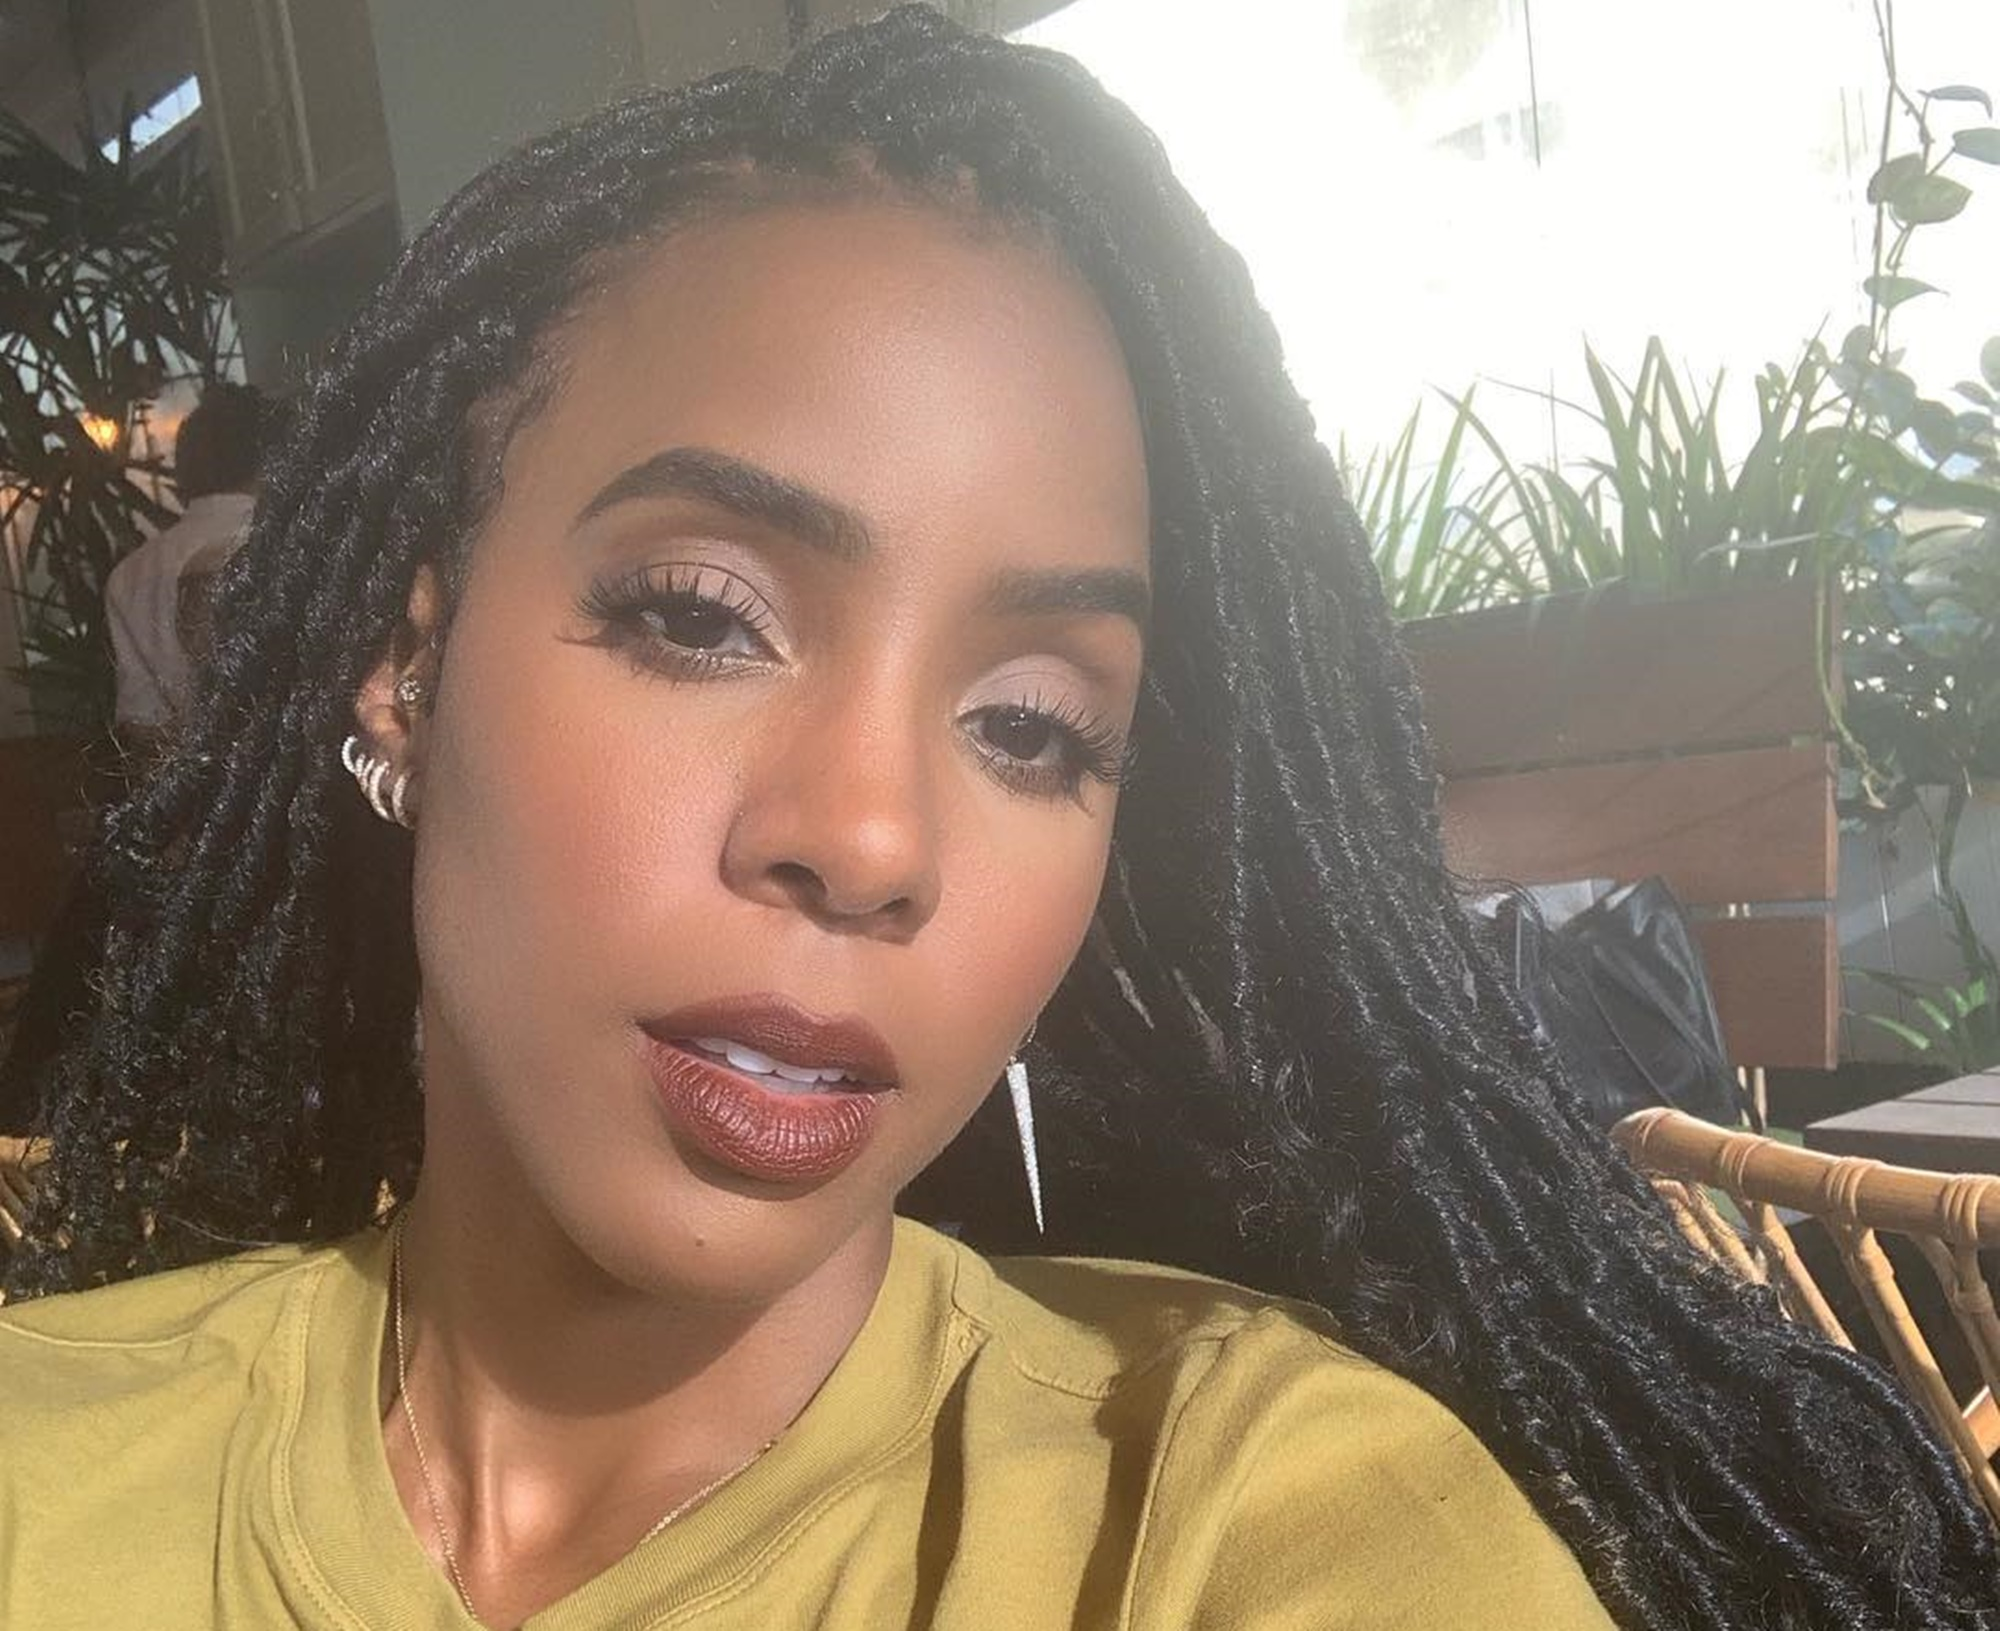 tamar-braxton-and-kelly-rowland-take-on-epic-twerking-challenge-halle-berry-is-loving-the-videos